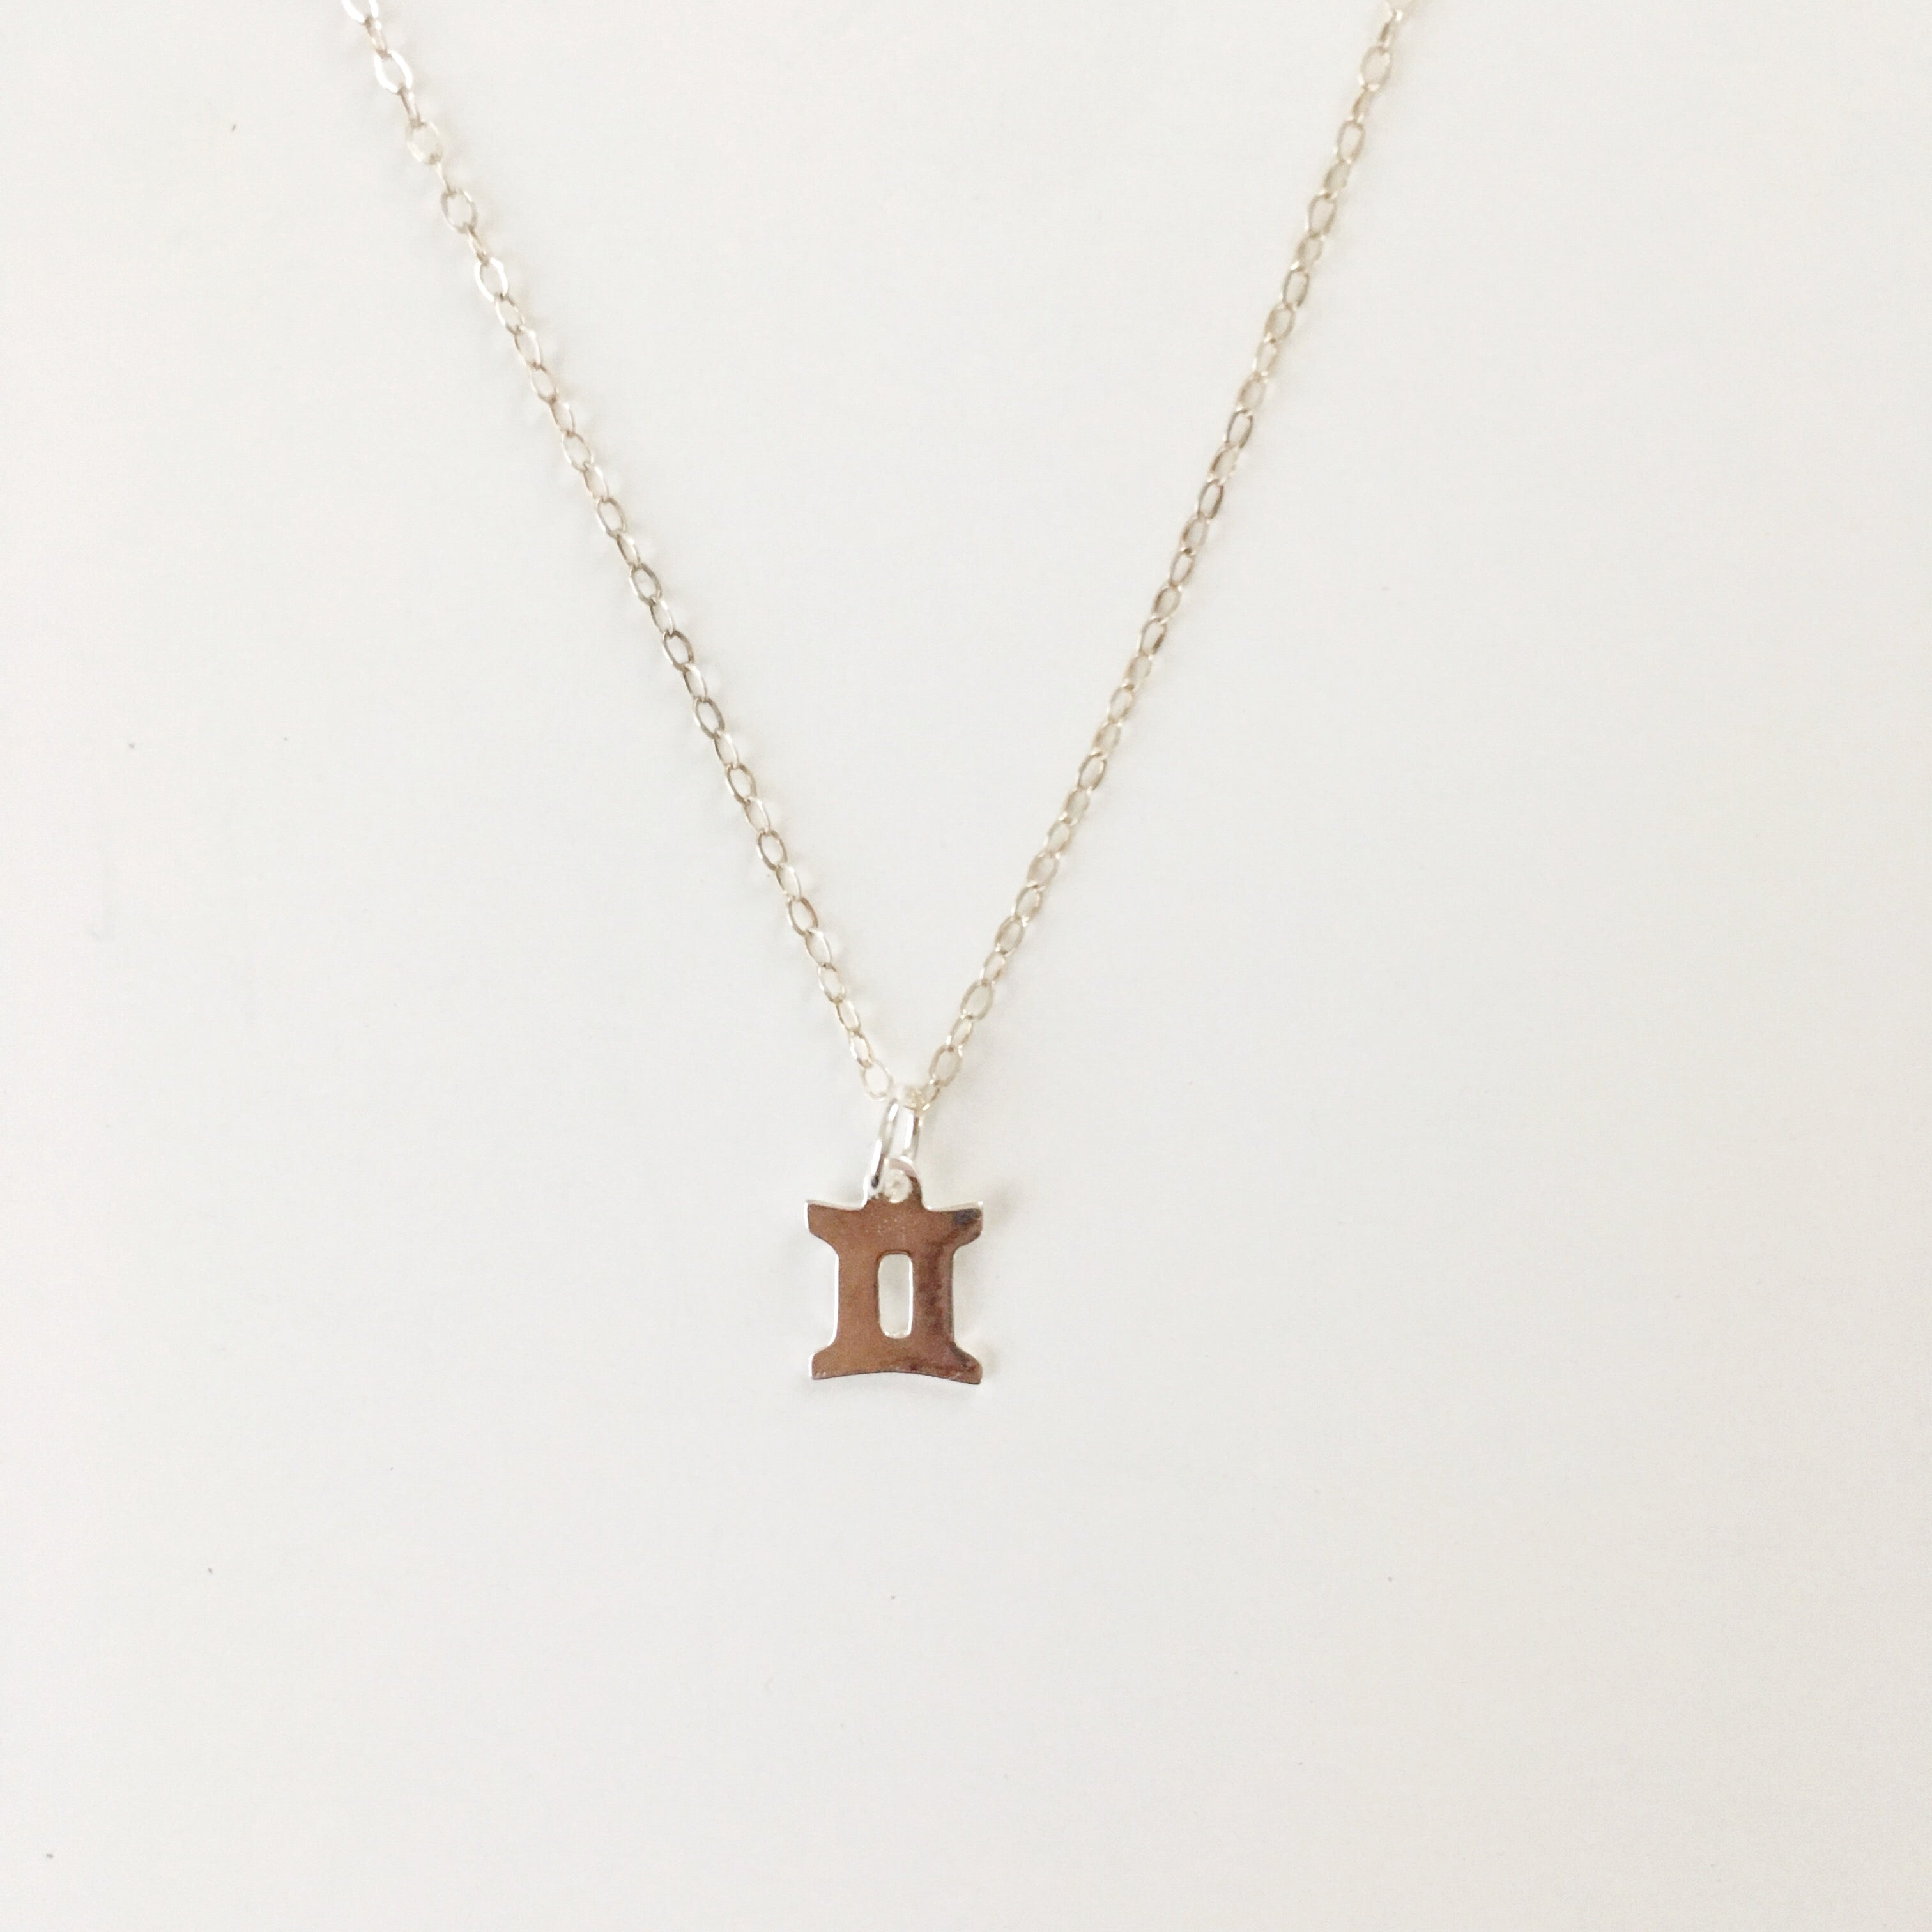 gemini necklace horoscope